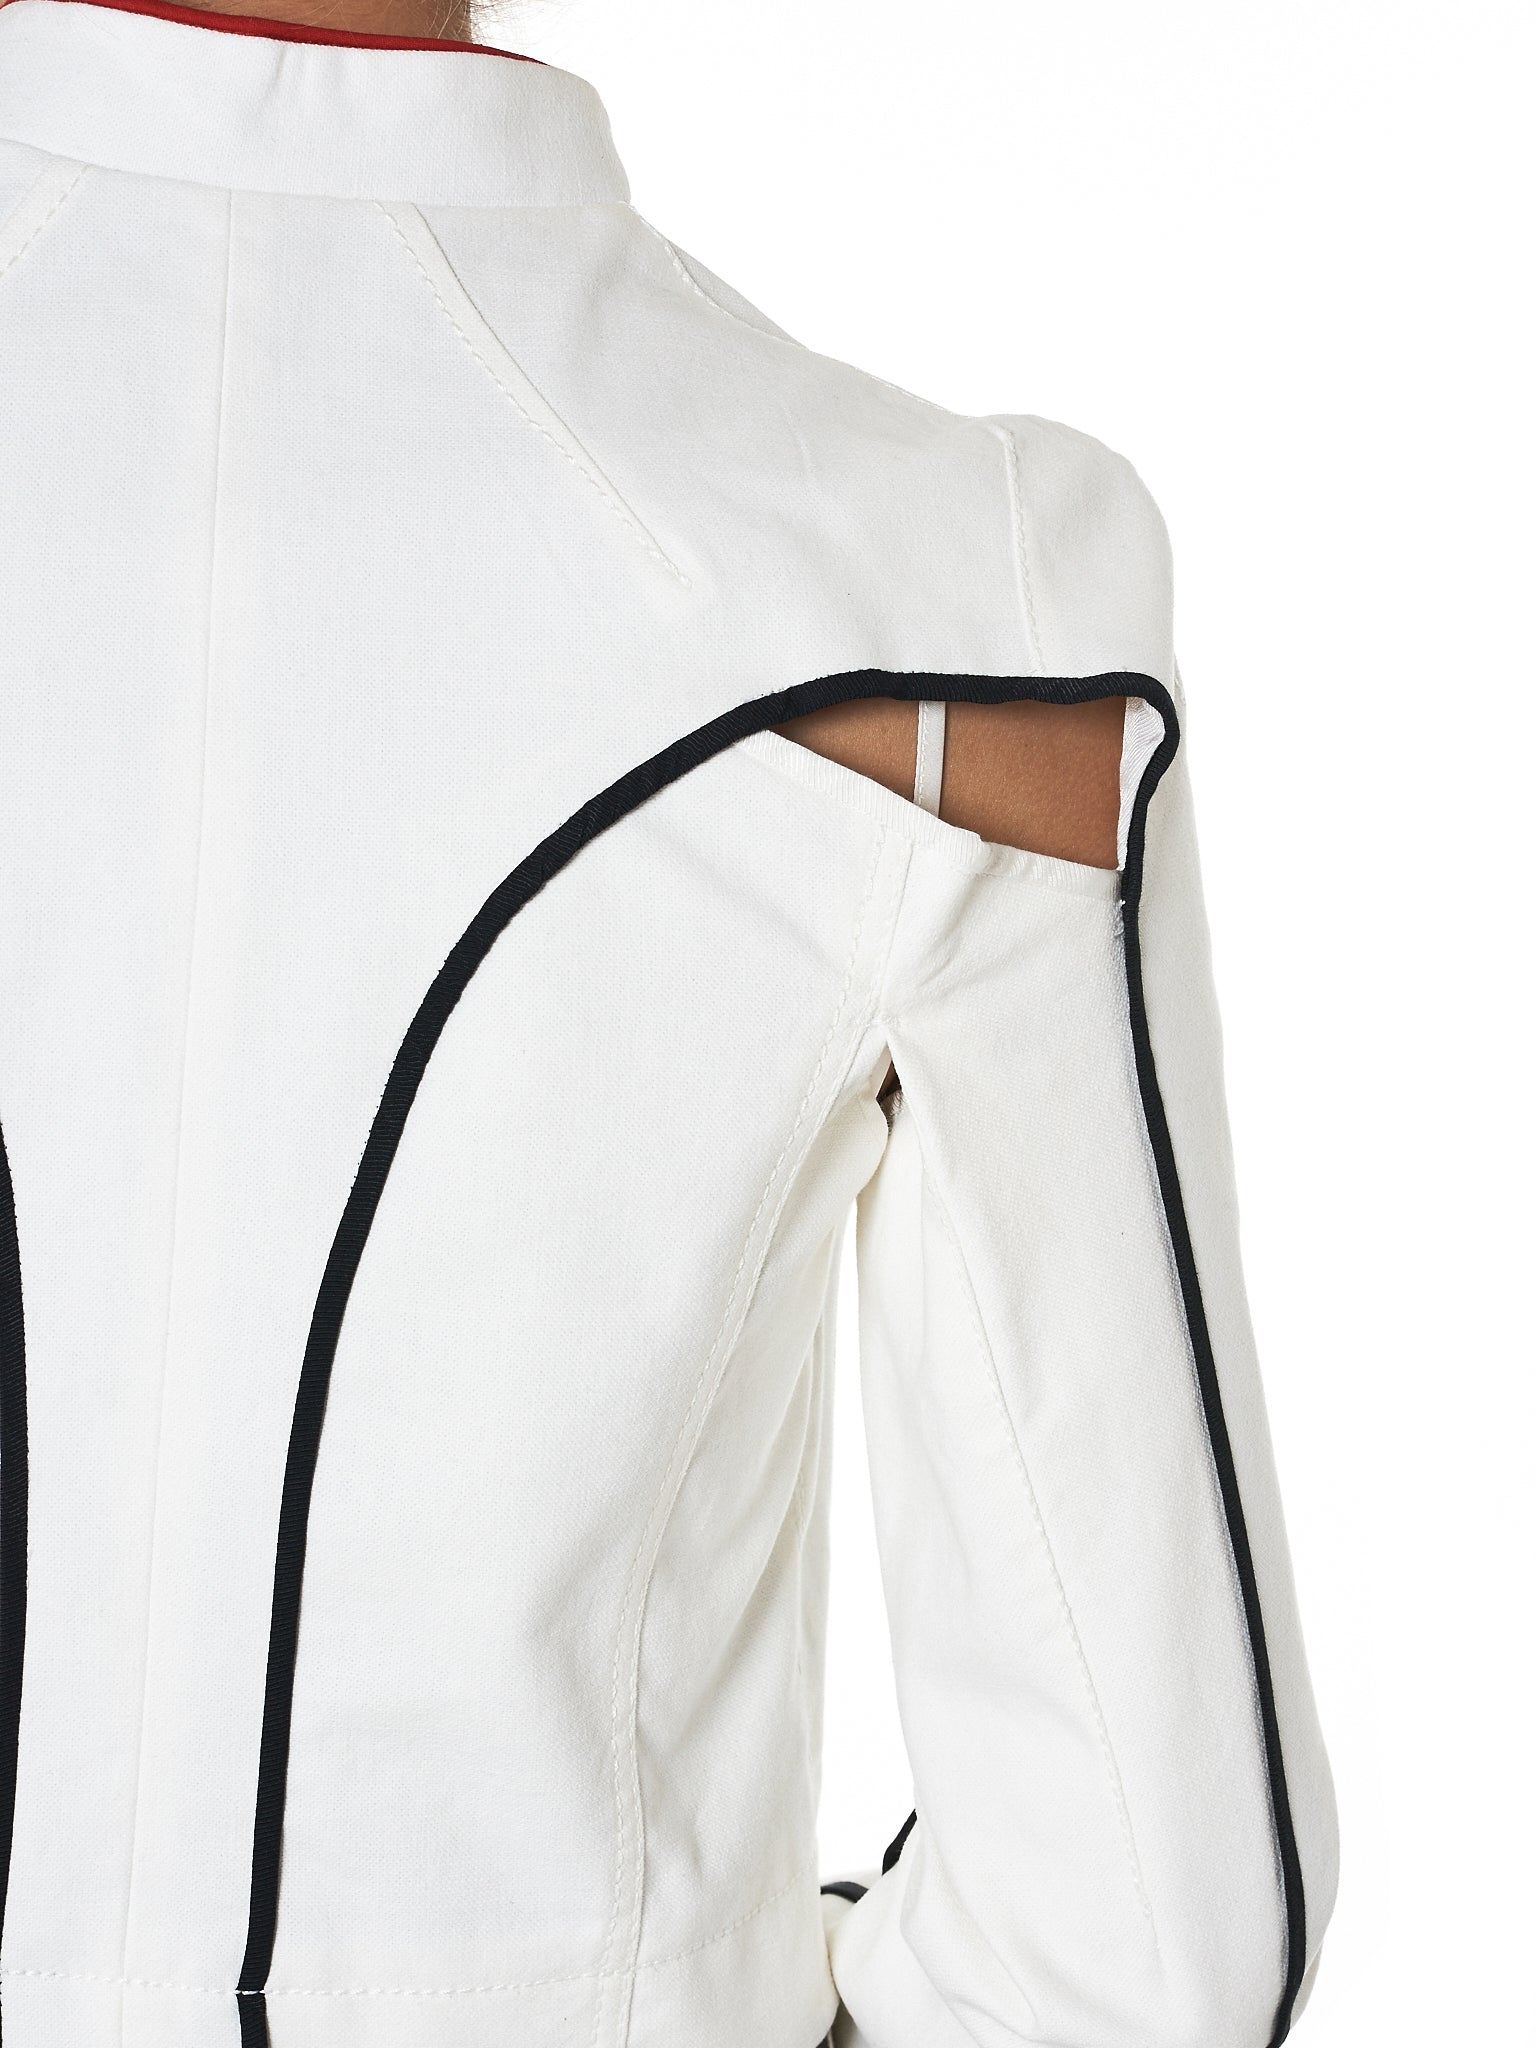 Haider Ackermann Cropped Denim Jacket - Hlorenzo Detail 2